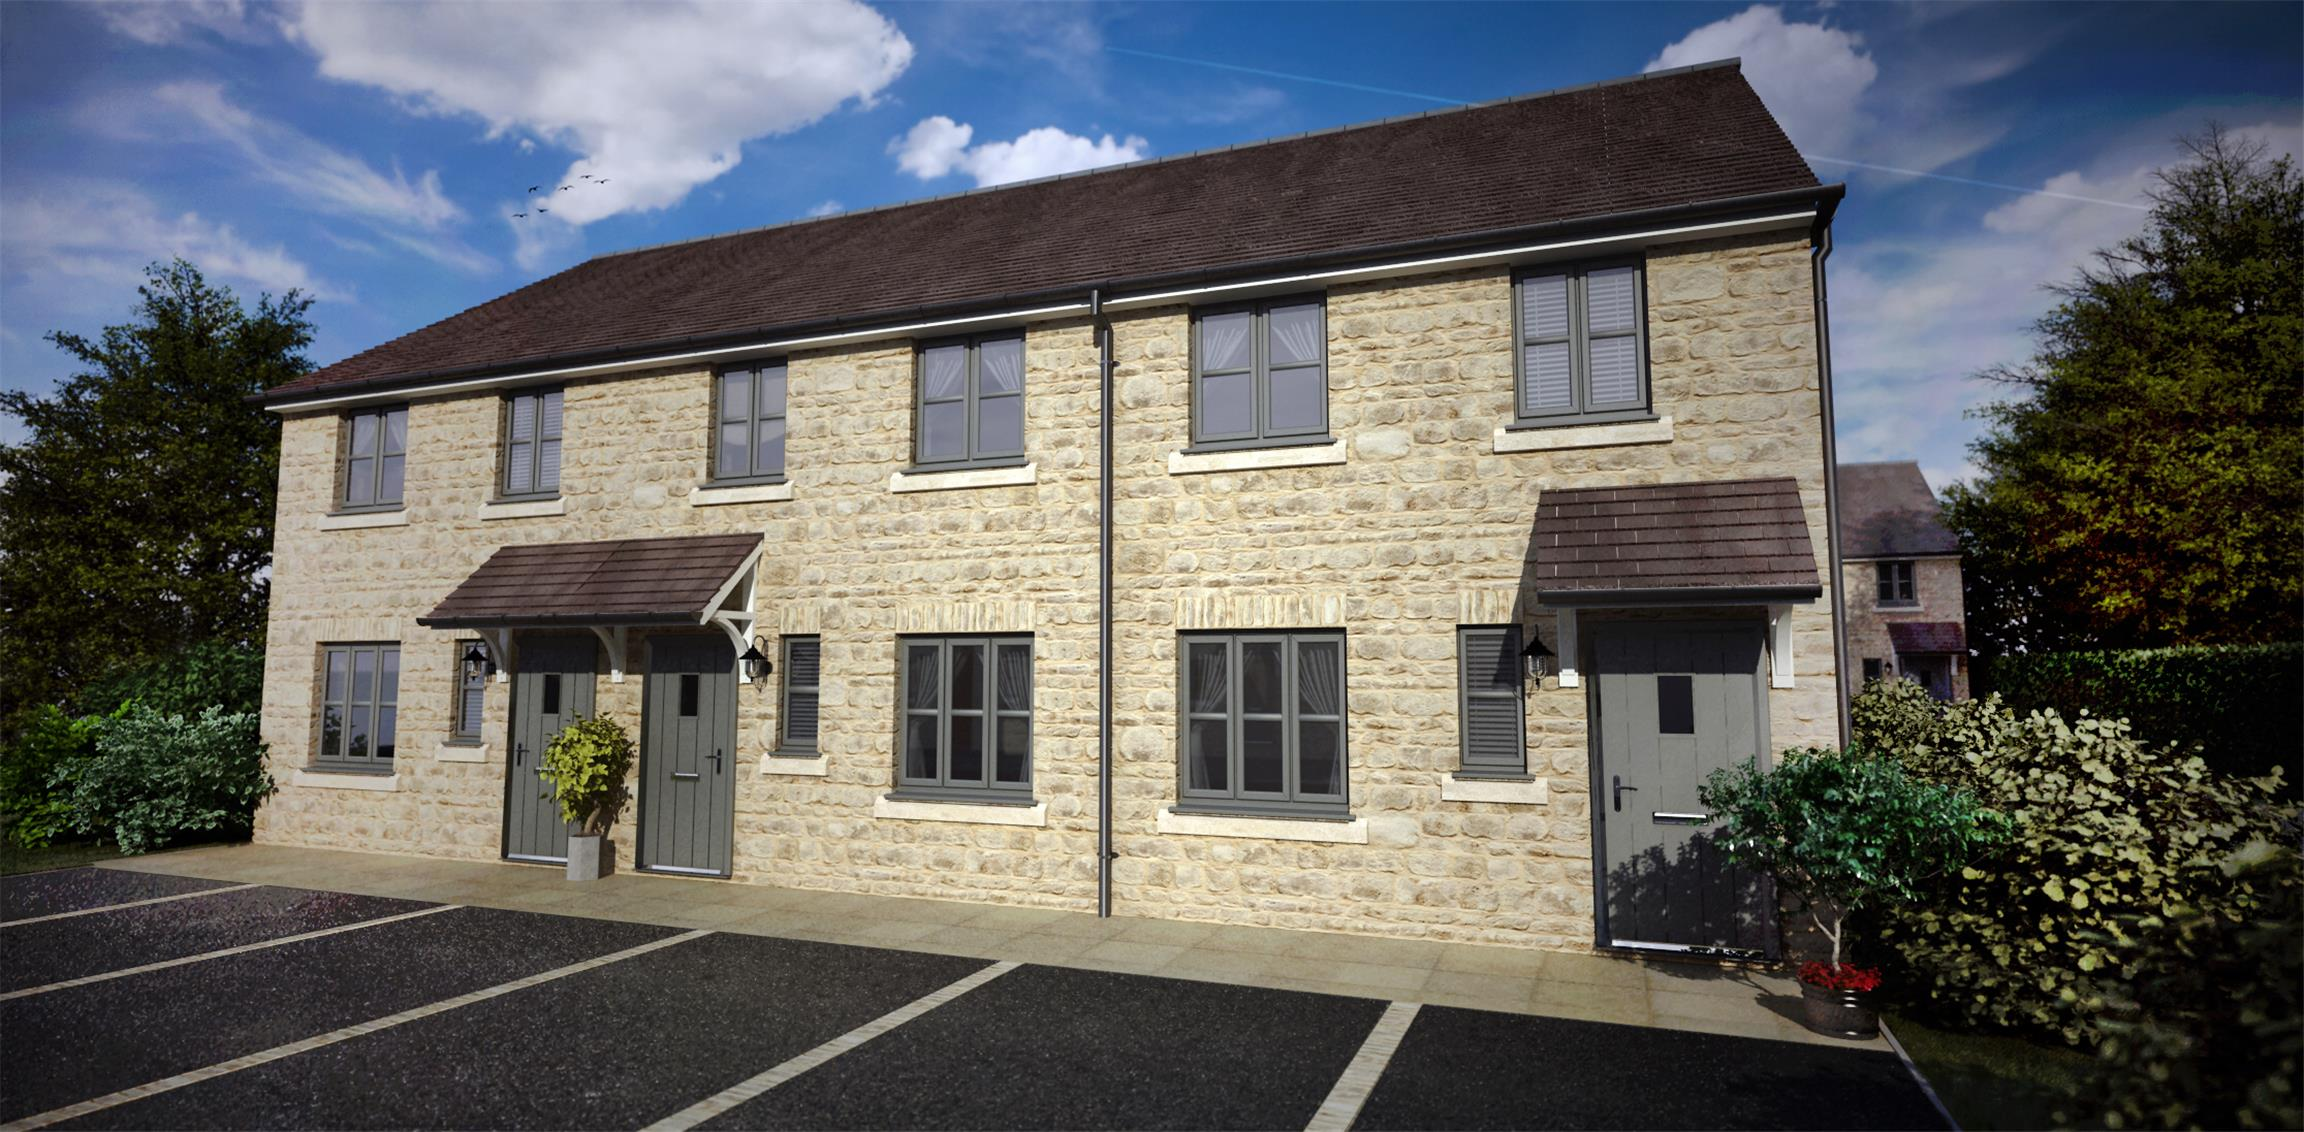 Plot 55, The Enford, Hares Chase, Cricklade, Snf SN6